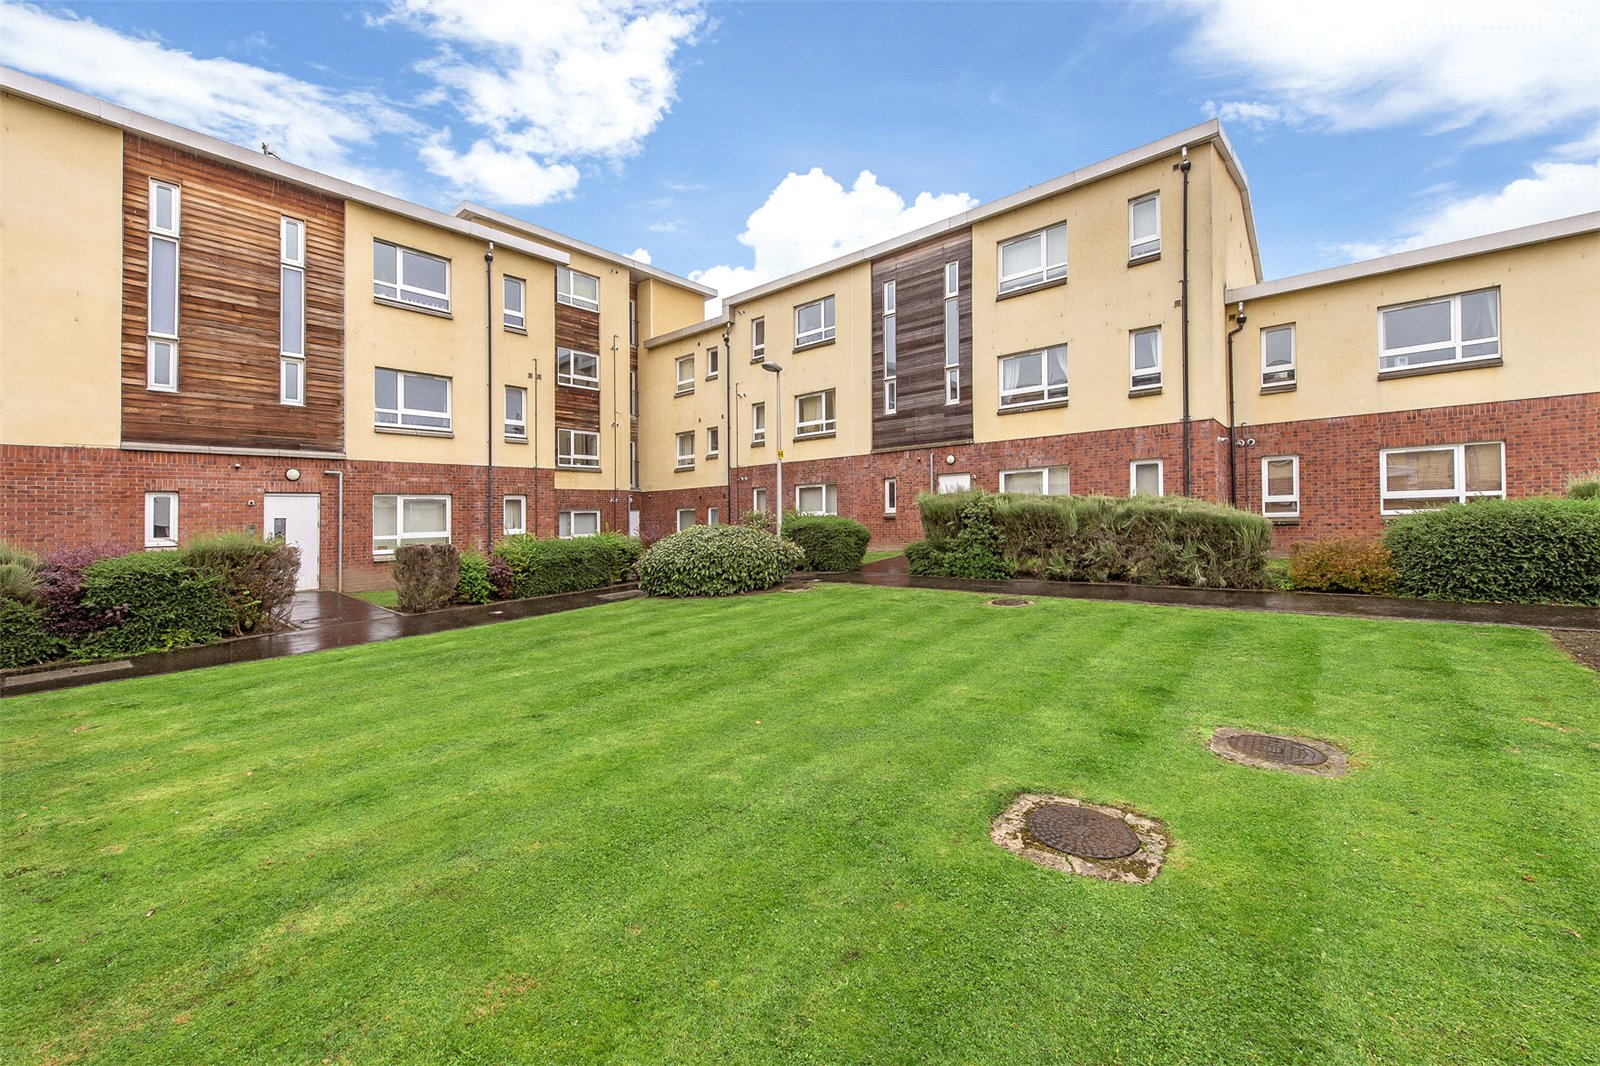 Affordable luxury: Immaculate top floor flat for under £200k